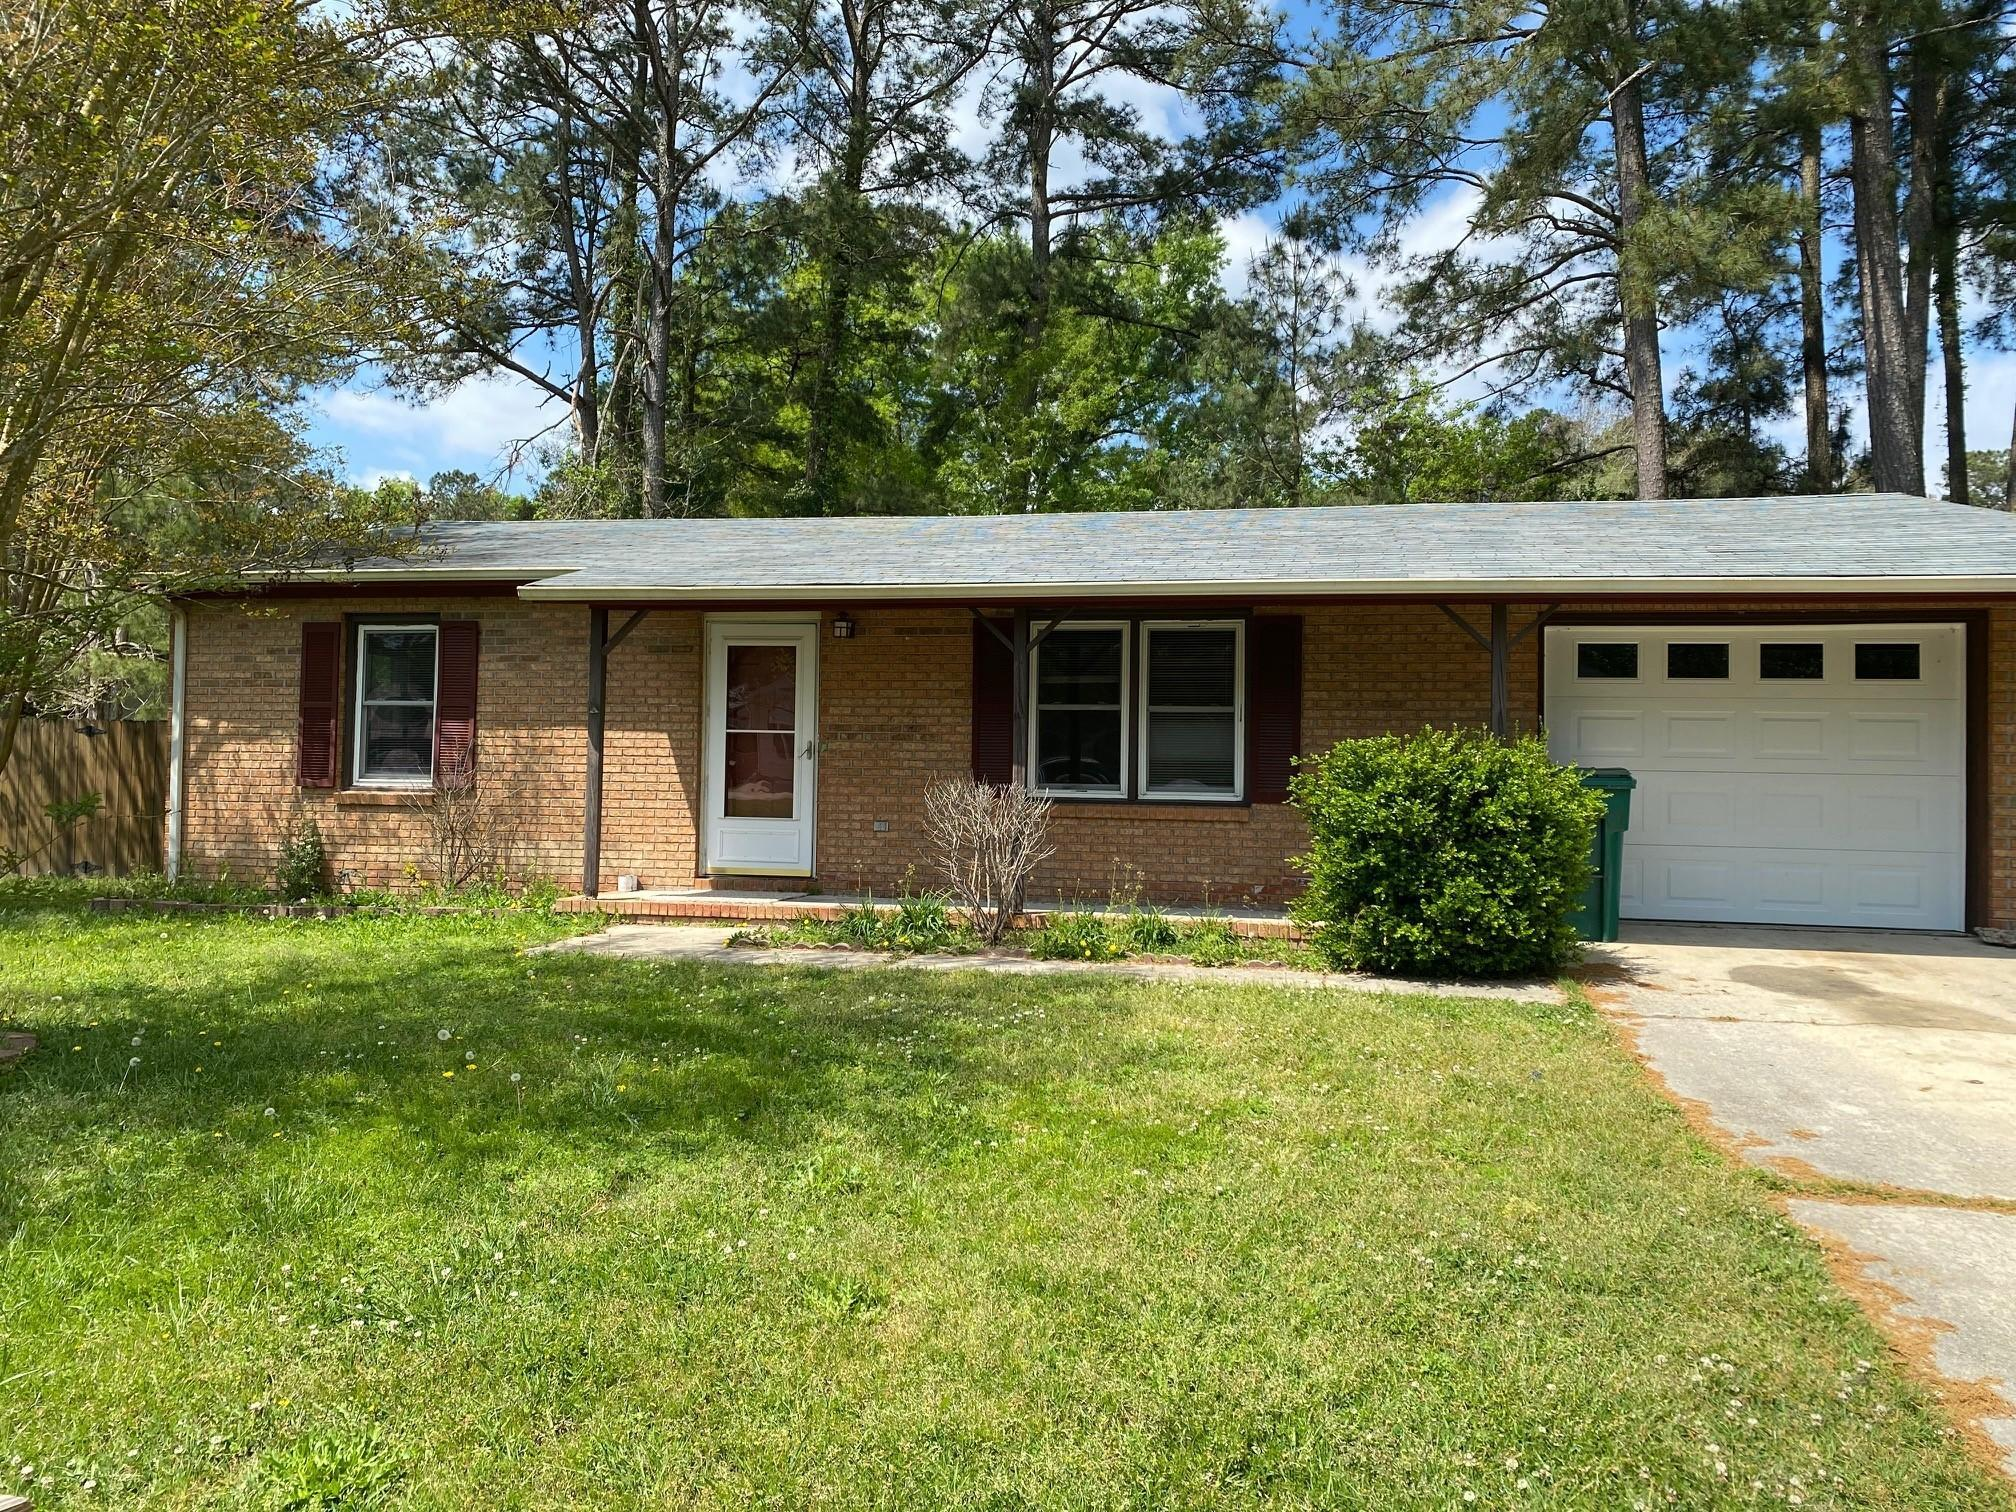 Move in ready, 3 bedroom 1 bath brick home that features new carpet in all bedrooms and LVP flooring throughout the main living area and fresh paint throughout the entire home.  The backyard features a wood deck and fenced in back yard for all your summer cookouts.